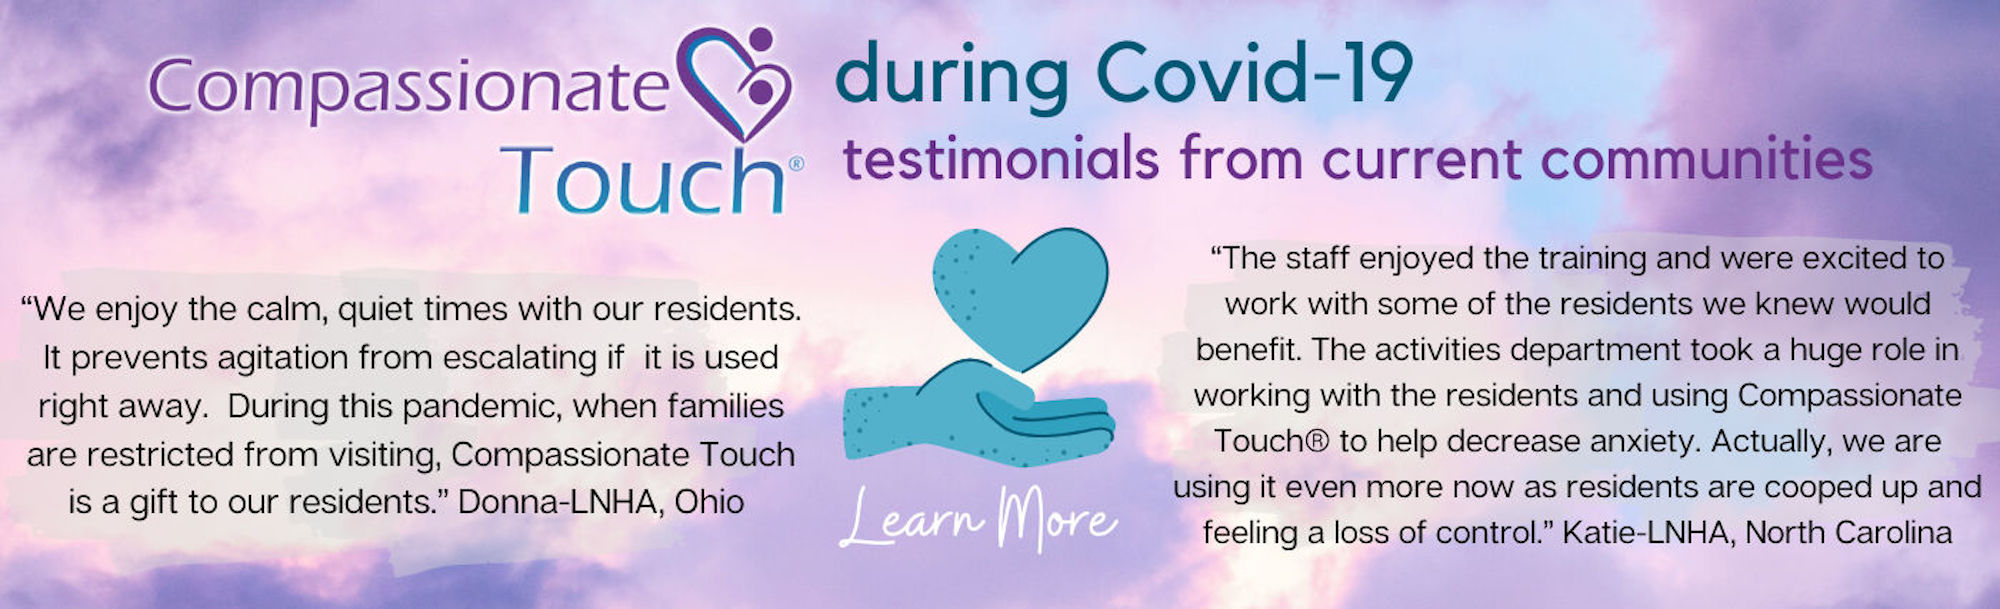 Compassionate Touch During COVID-19